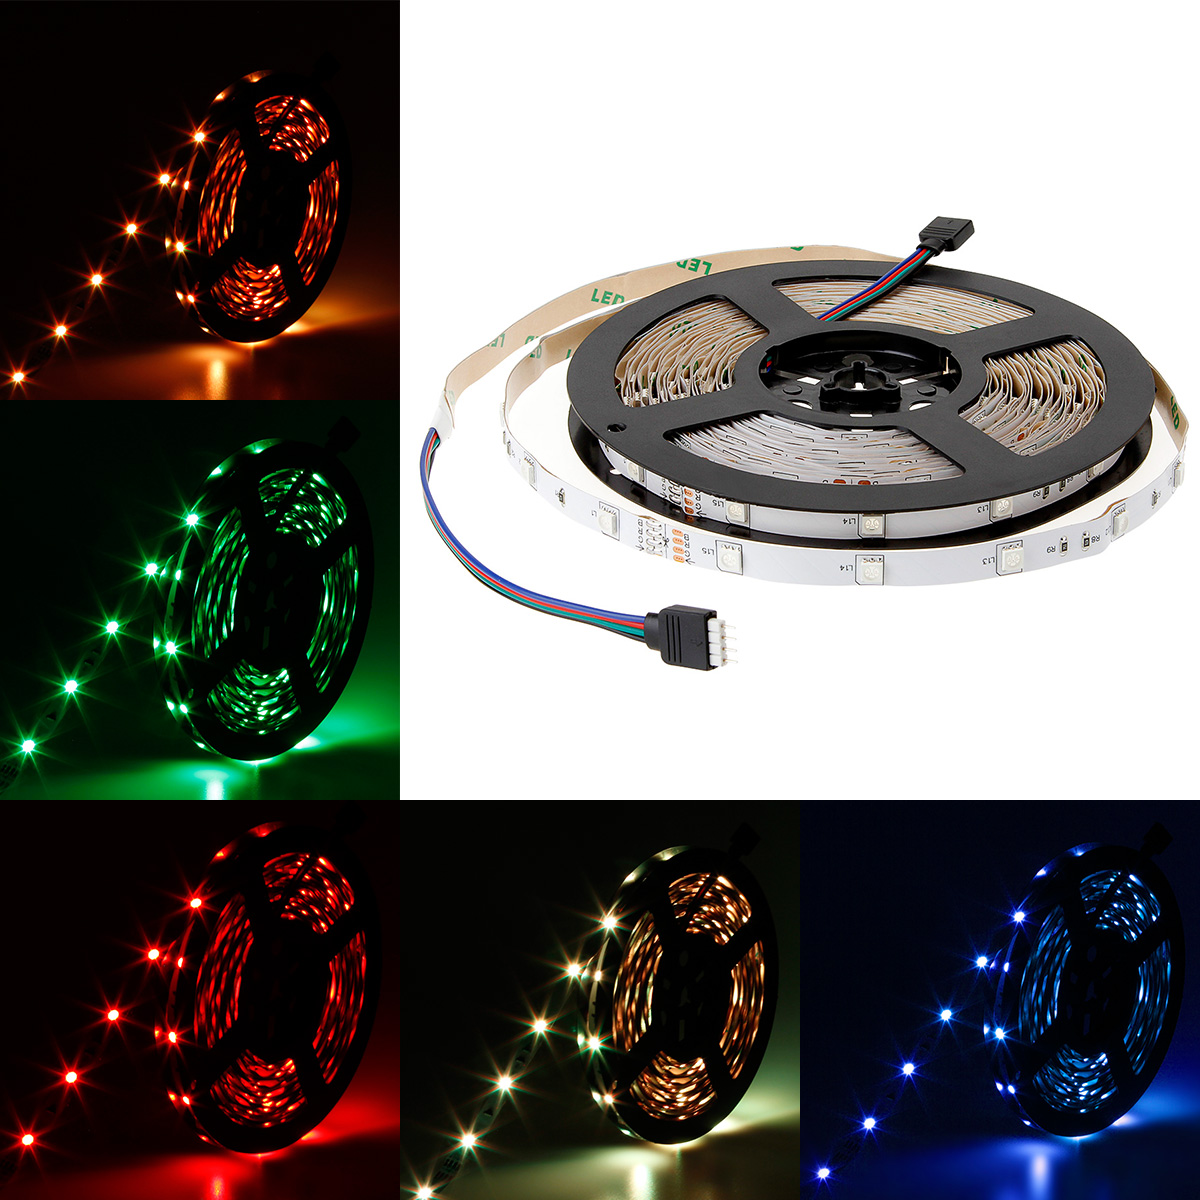 SUPERNIGHT 10m 32.8FT Color Changing Flexible LED Strip Light 5050 SMD 300 LEDs RGB Non-waterproof LED Light Strip Rope Light DC 24V Decorative LED Lighting for Seasonal Decoration